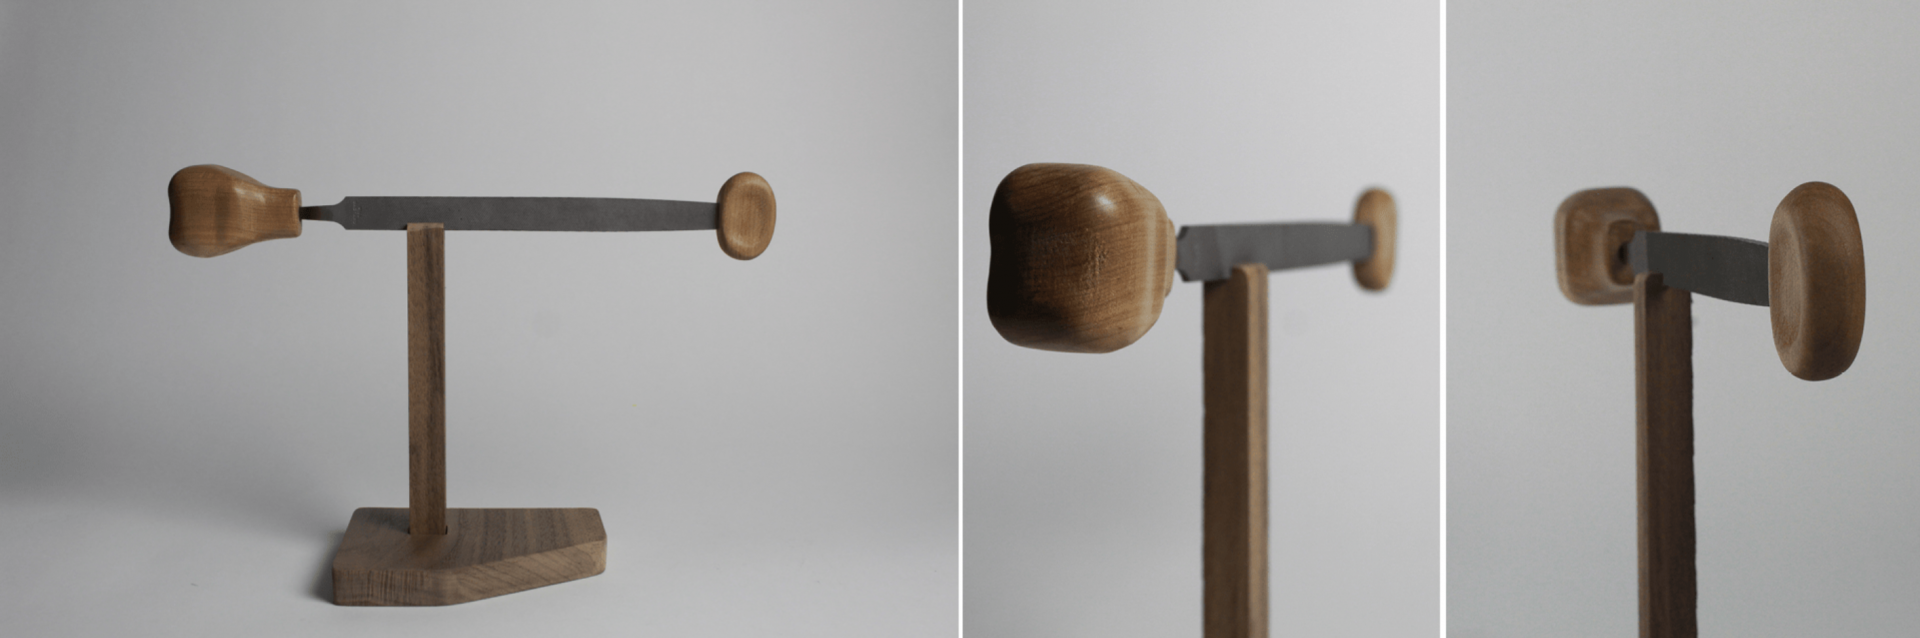 Several angled photos of a long handtool with two wooden handles.